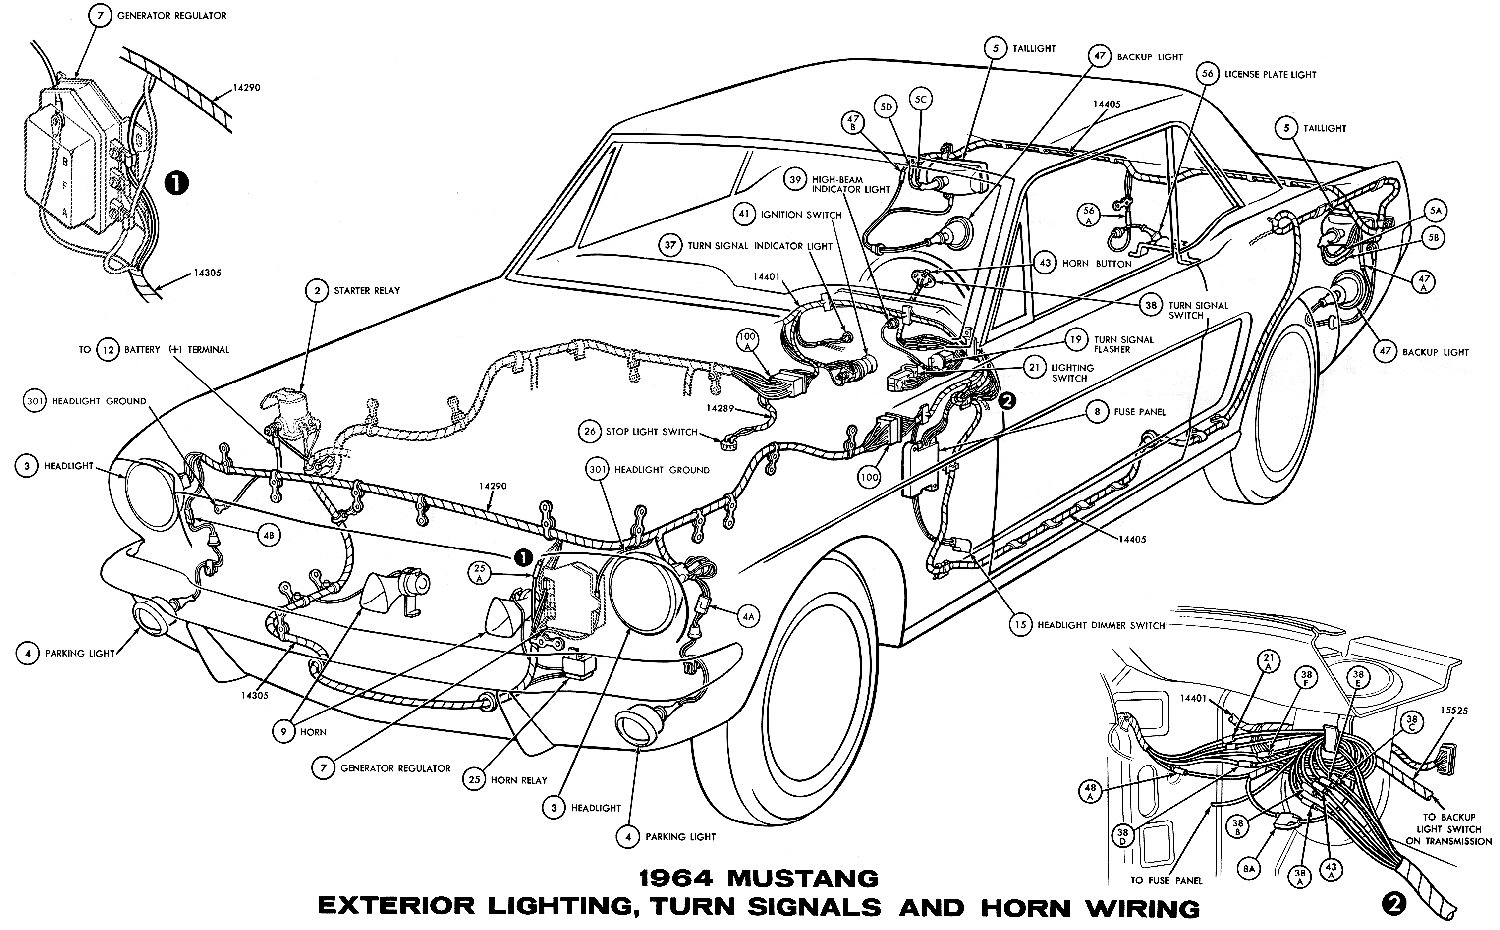 1964h 1964 mustang wiring diagrams average joe restoration